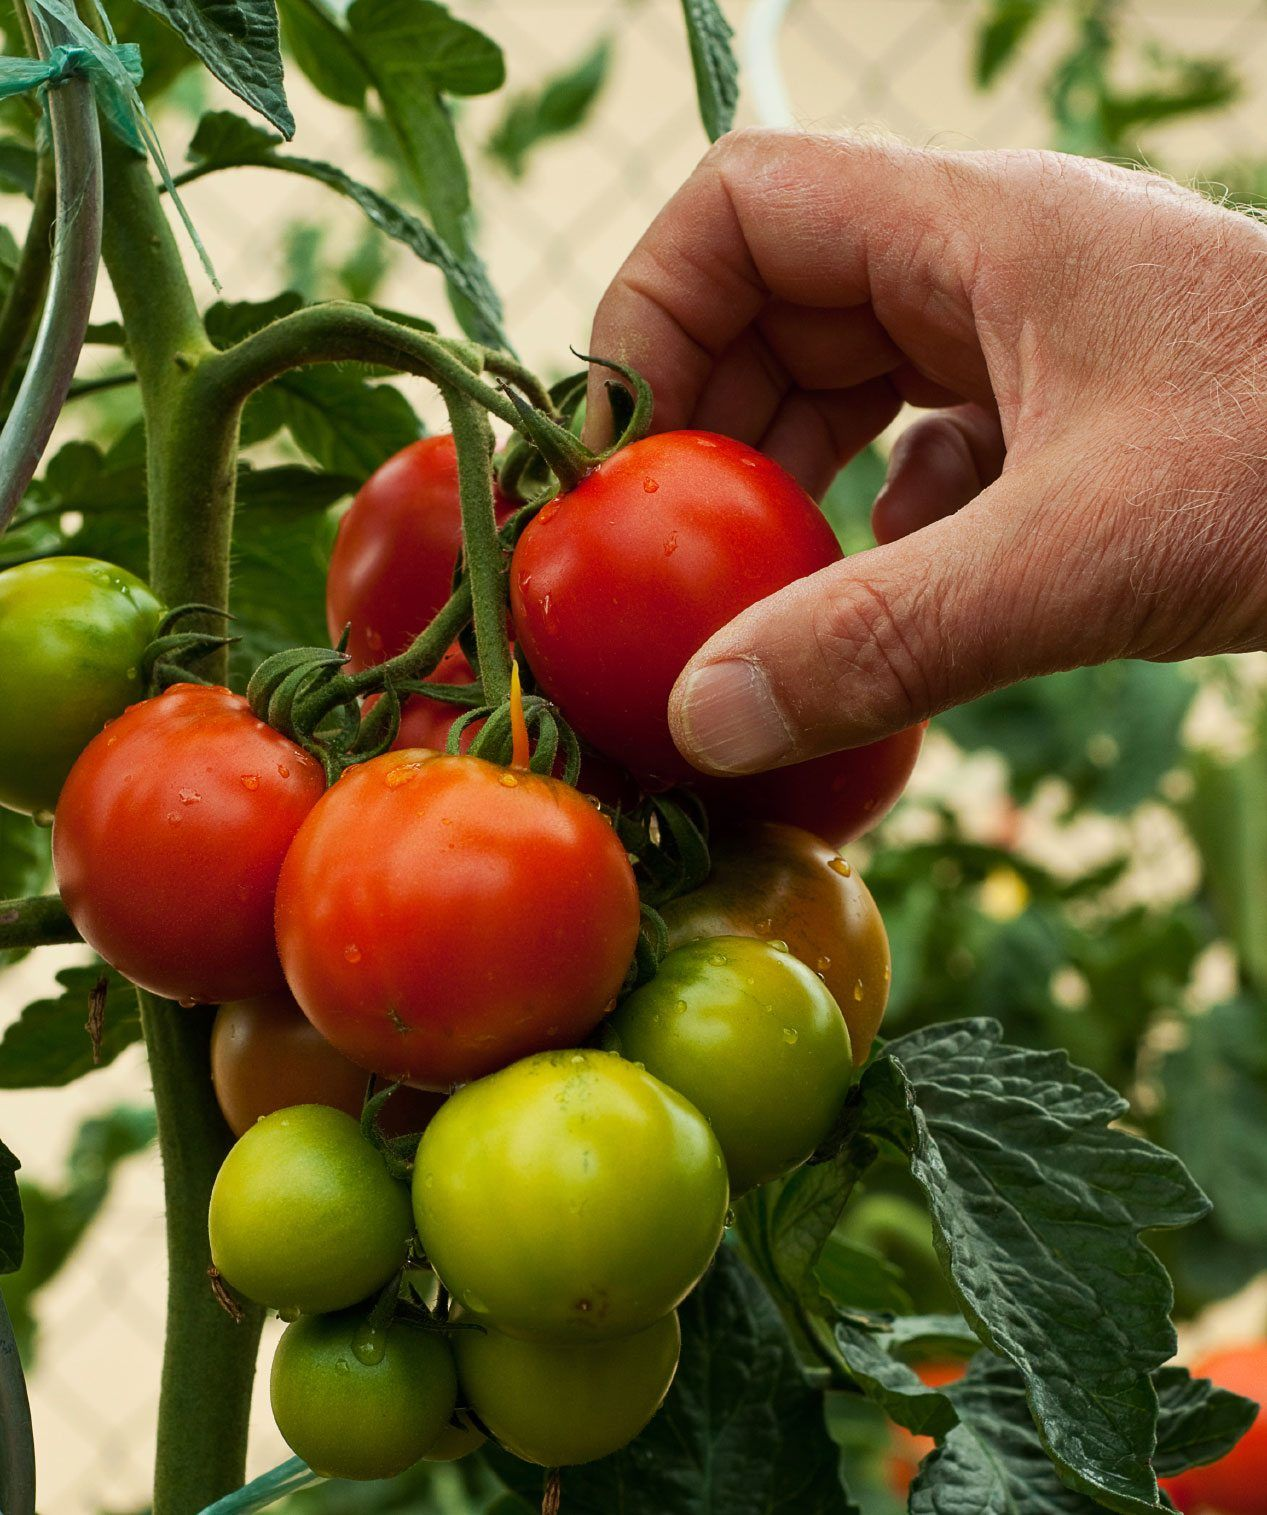 Harvest Time For Tomatoes When To Pick Tomatoes Tomato Garden